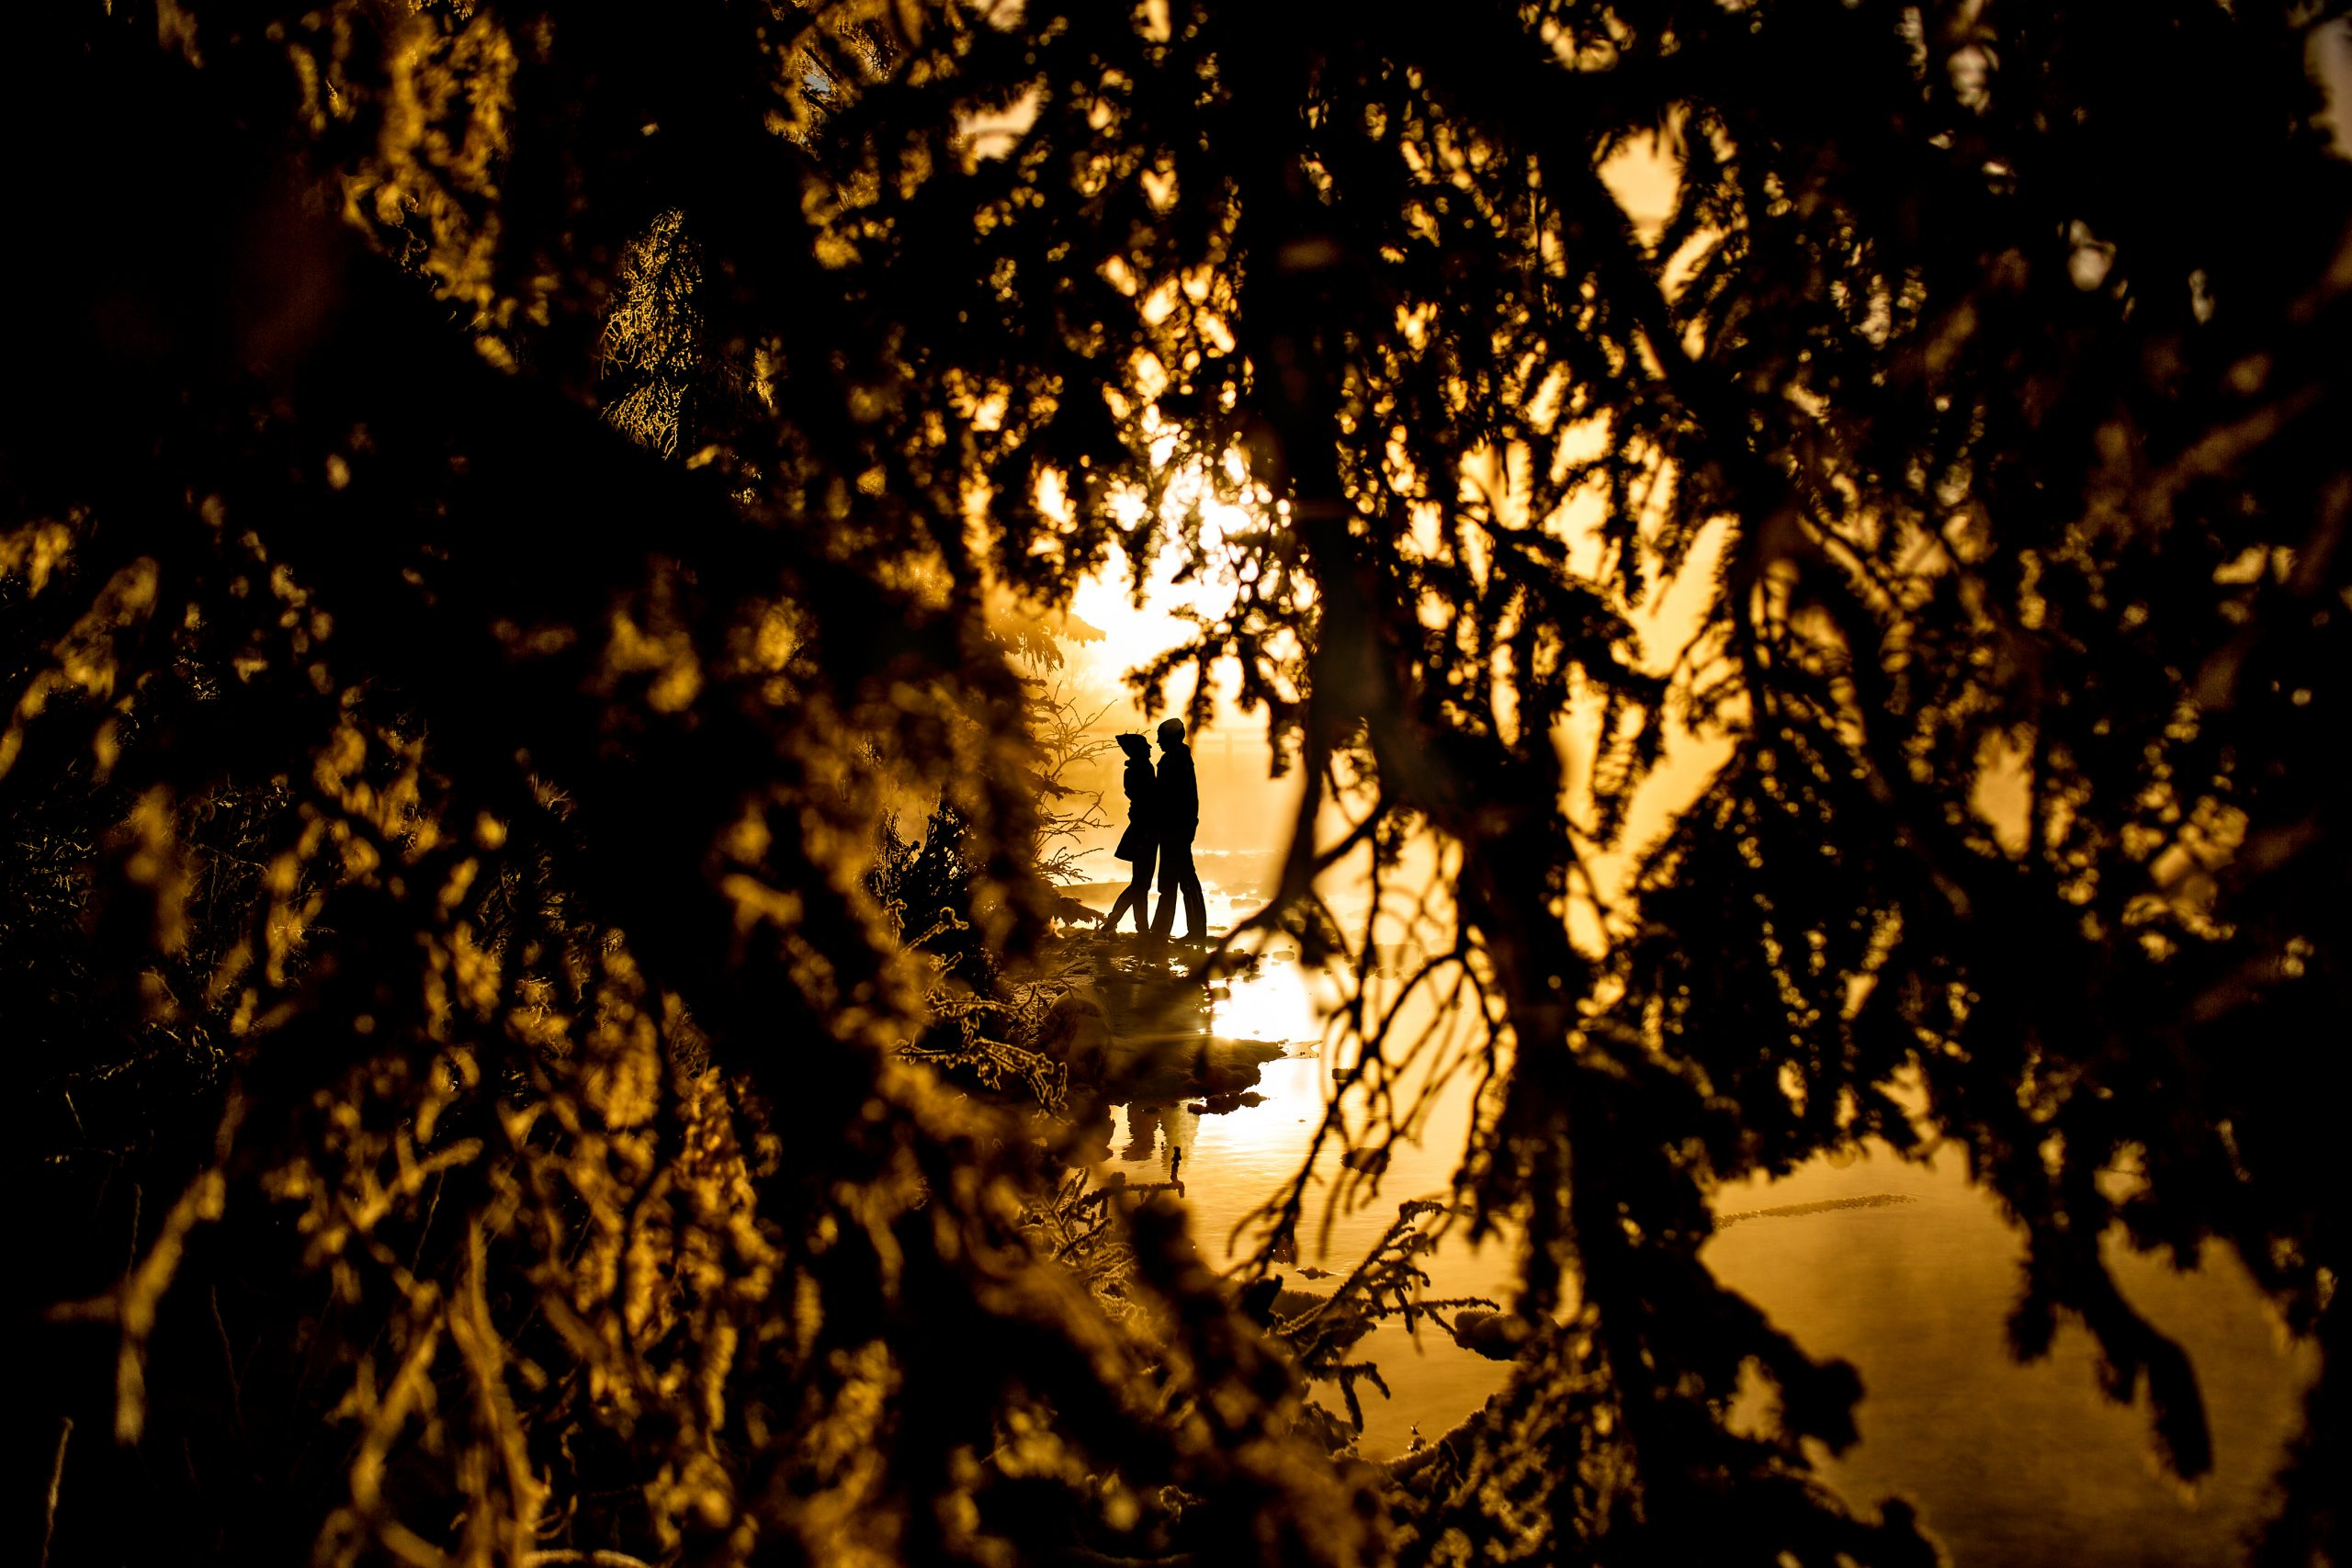 Silhouette of couple shrouded by tree branches is illuminated by sunlight